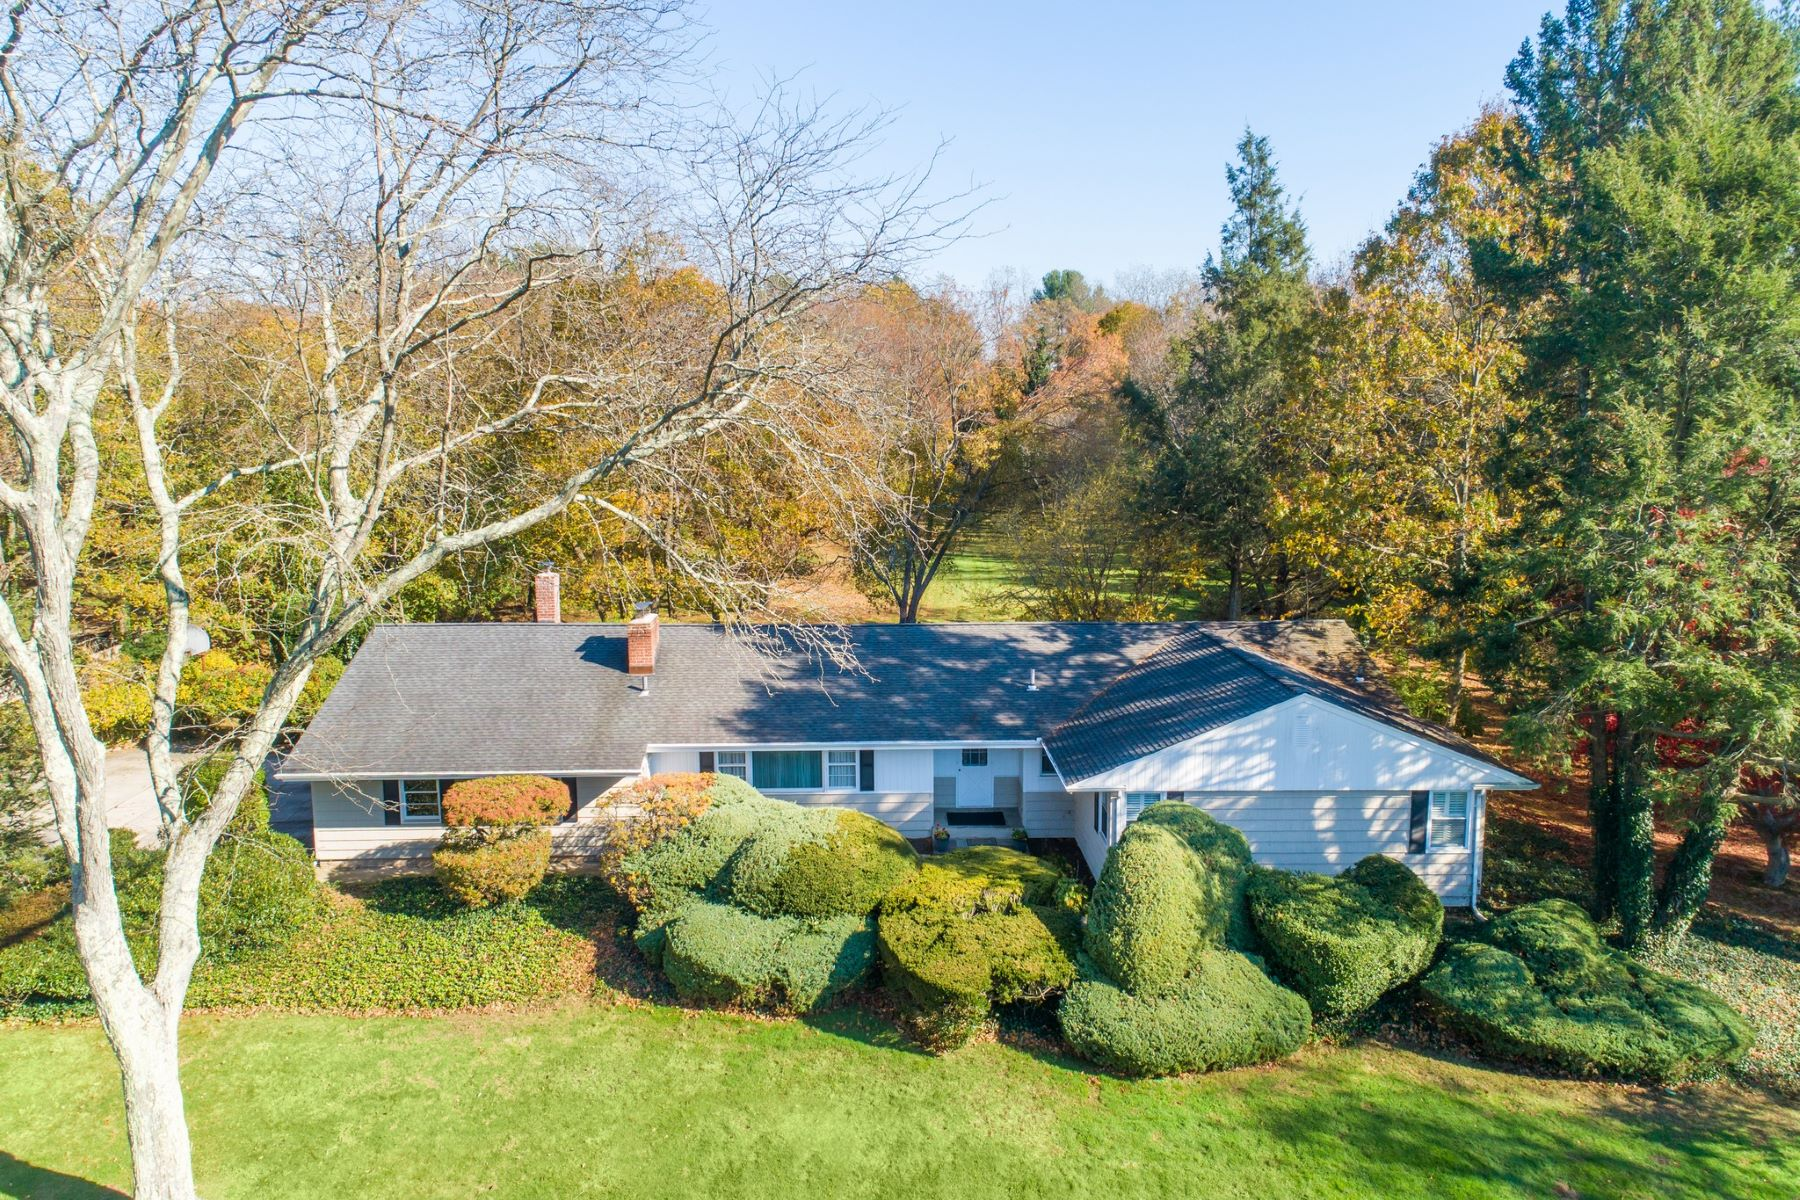 Single Family Homes for Sale at Cold Spring Harbor 12 North Run Cold Spring Harbor, New York 11724 United States